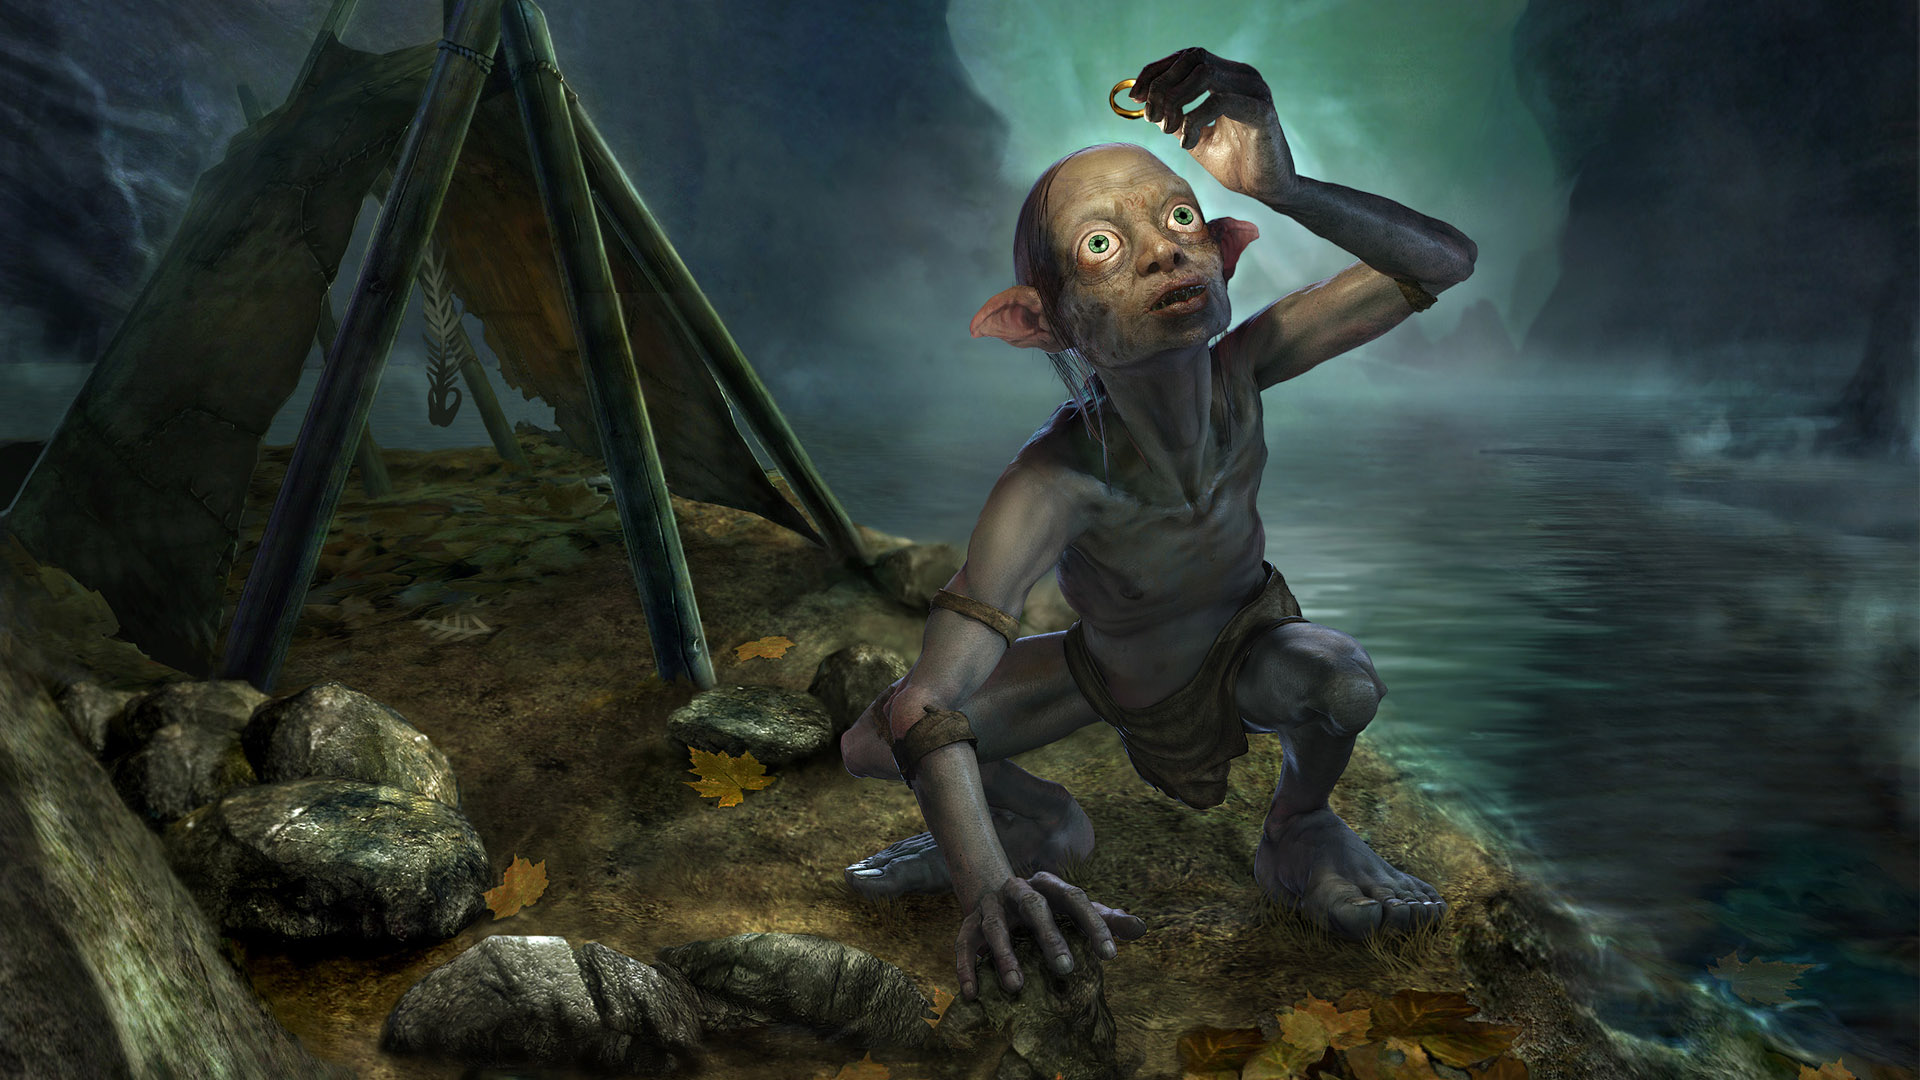 Smeagol Lord Of The Rings Hd Wallpaper Hd Wallpapers